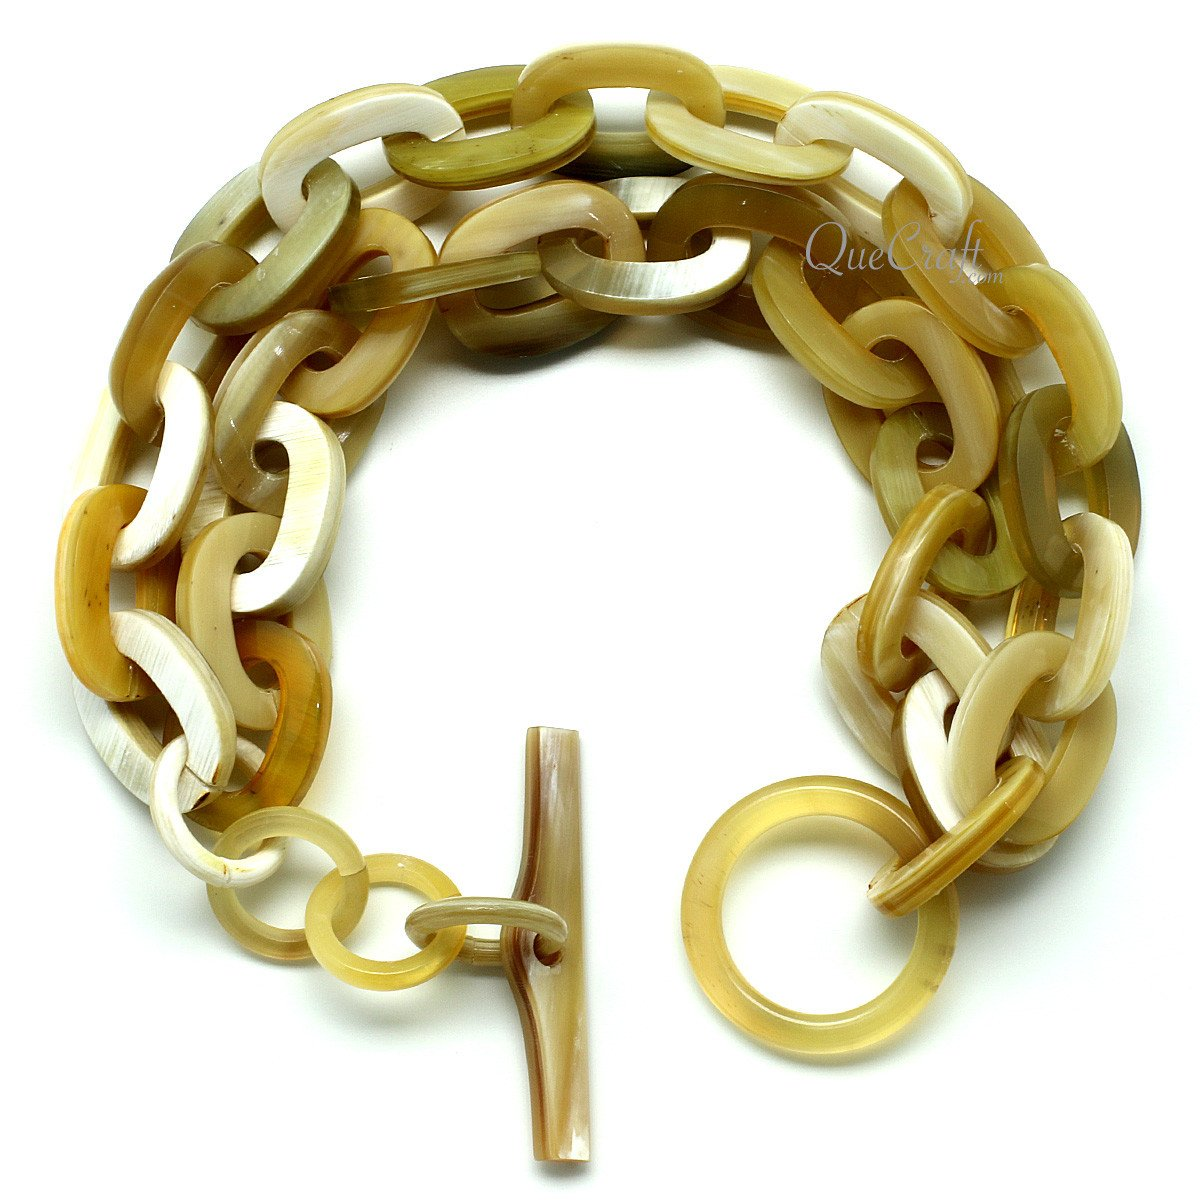 Horn Chain Bracelet #11942 - HORN.JEWELRY by QueCraft